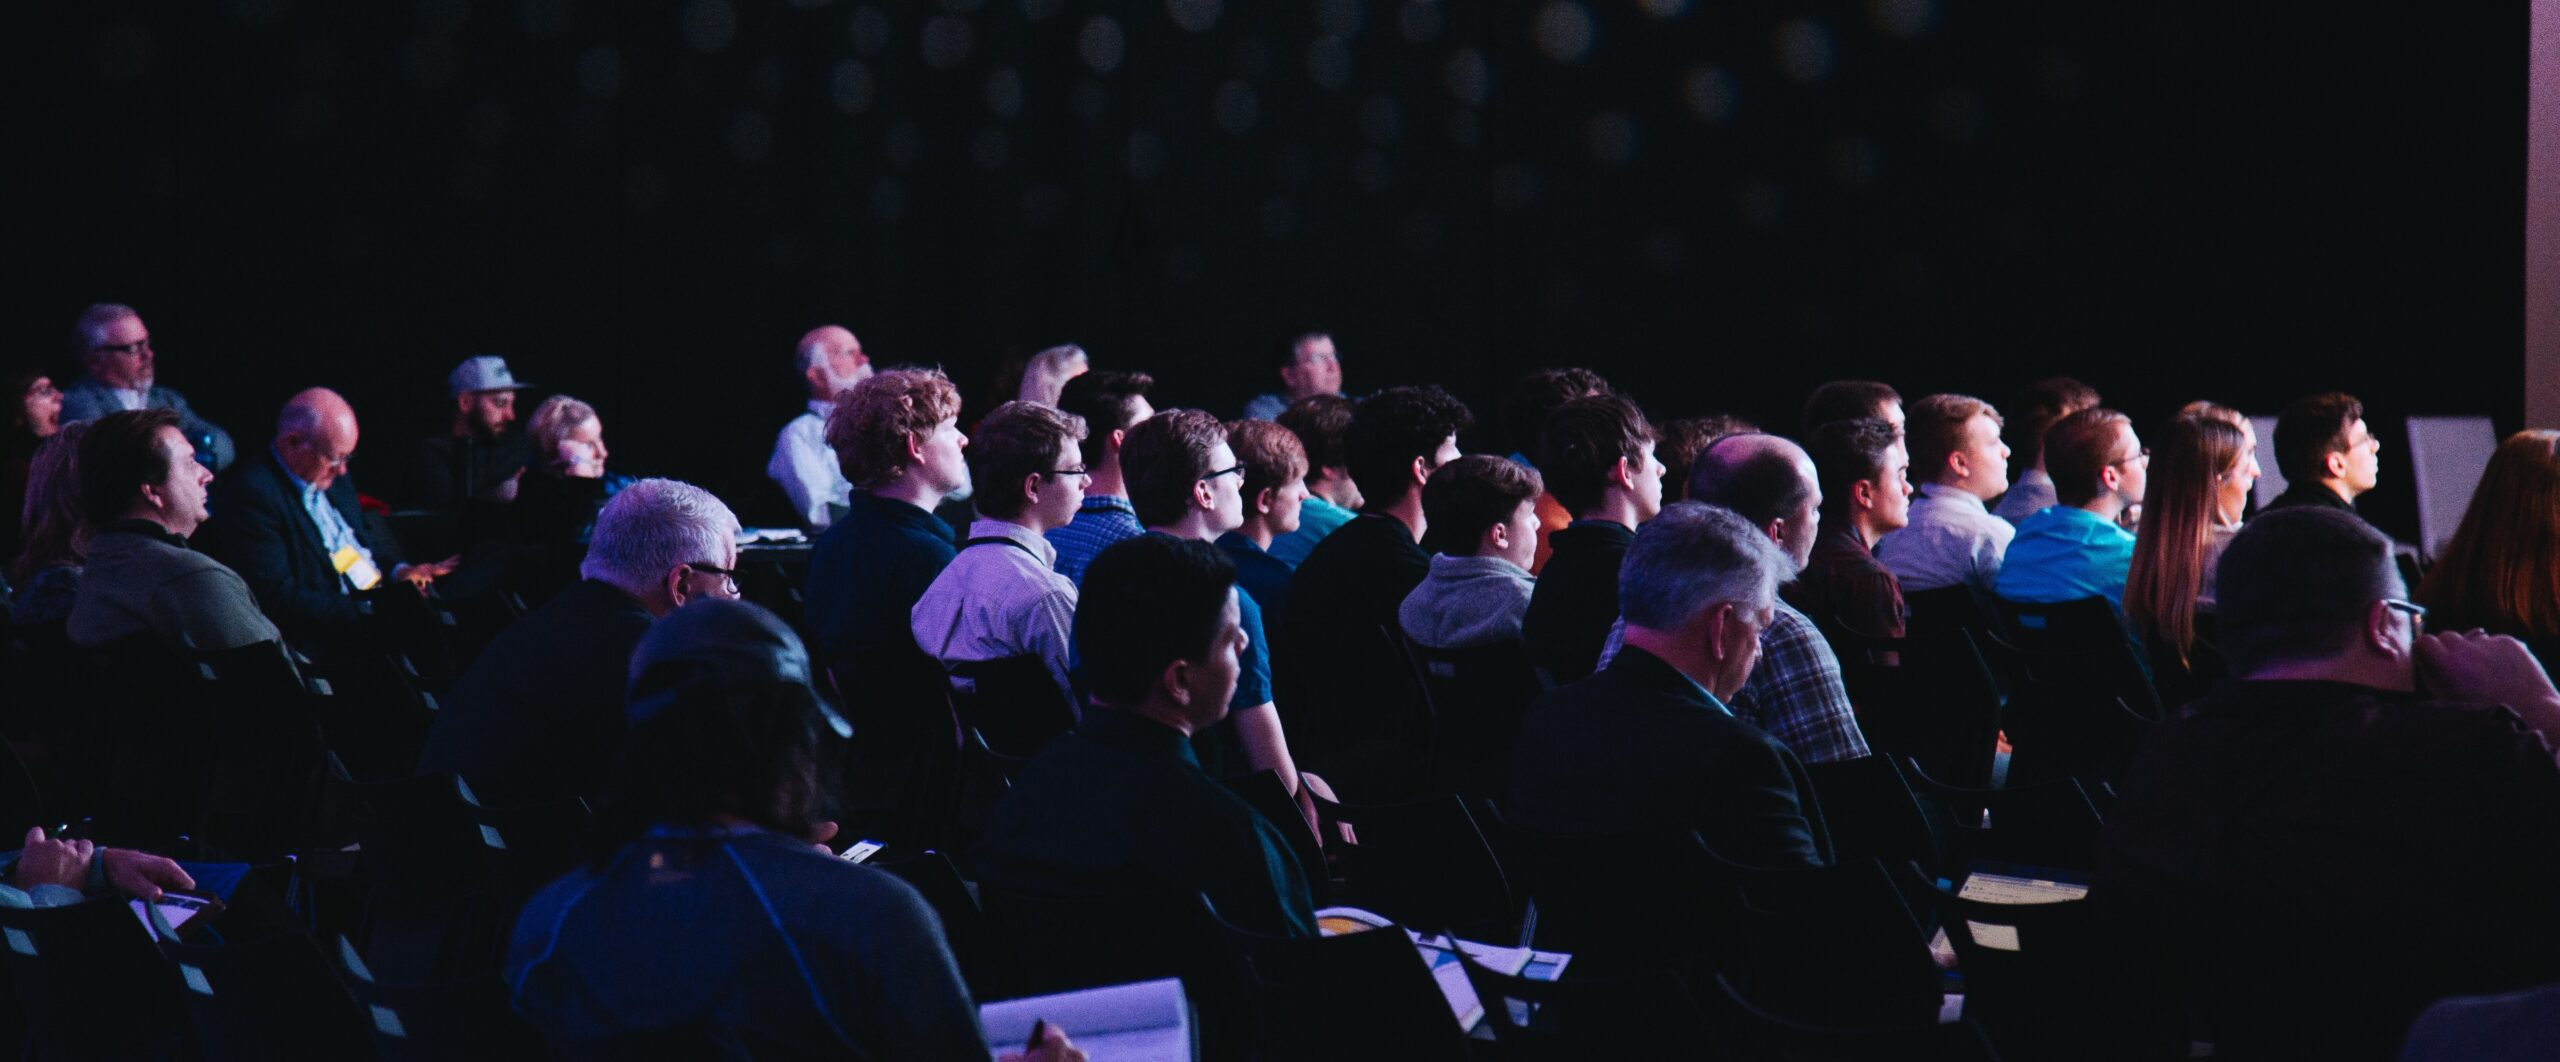 How to run a successful hybrid event